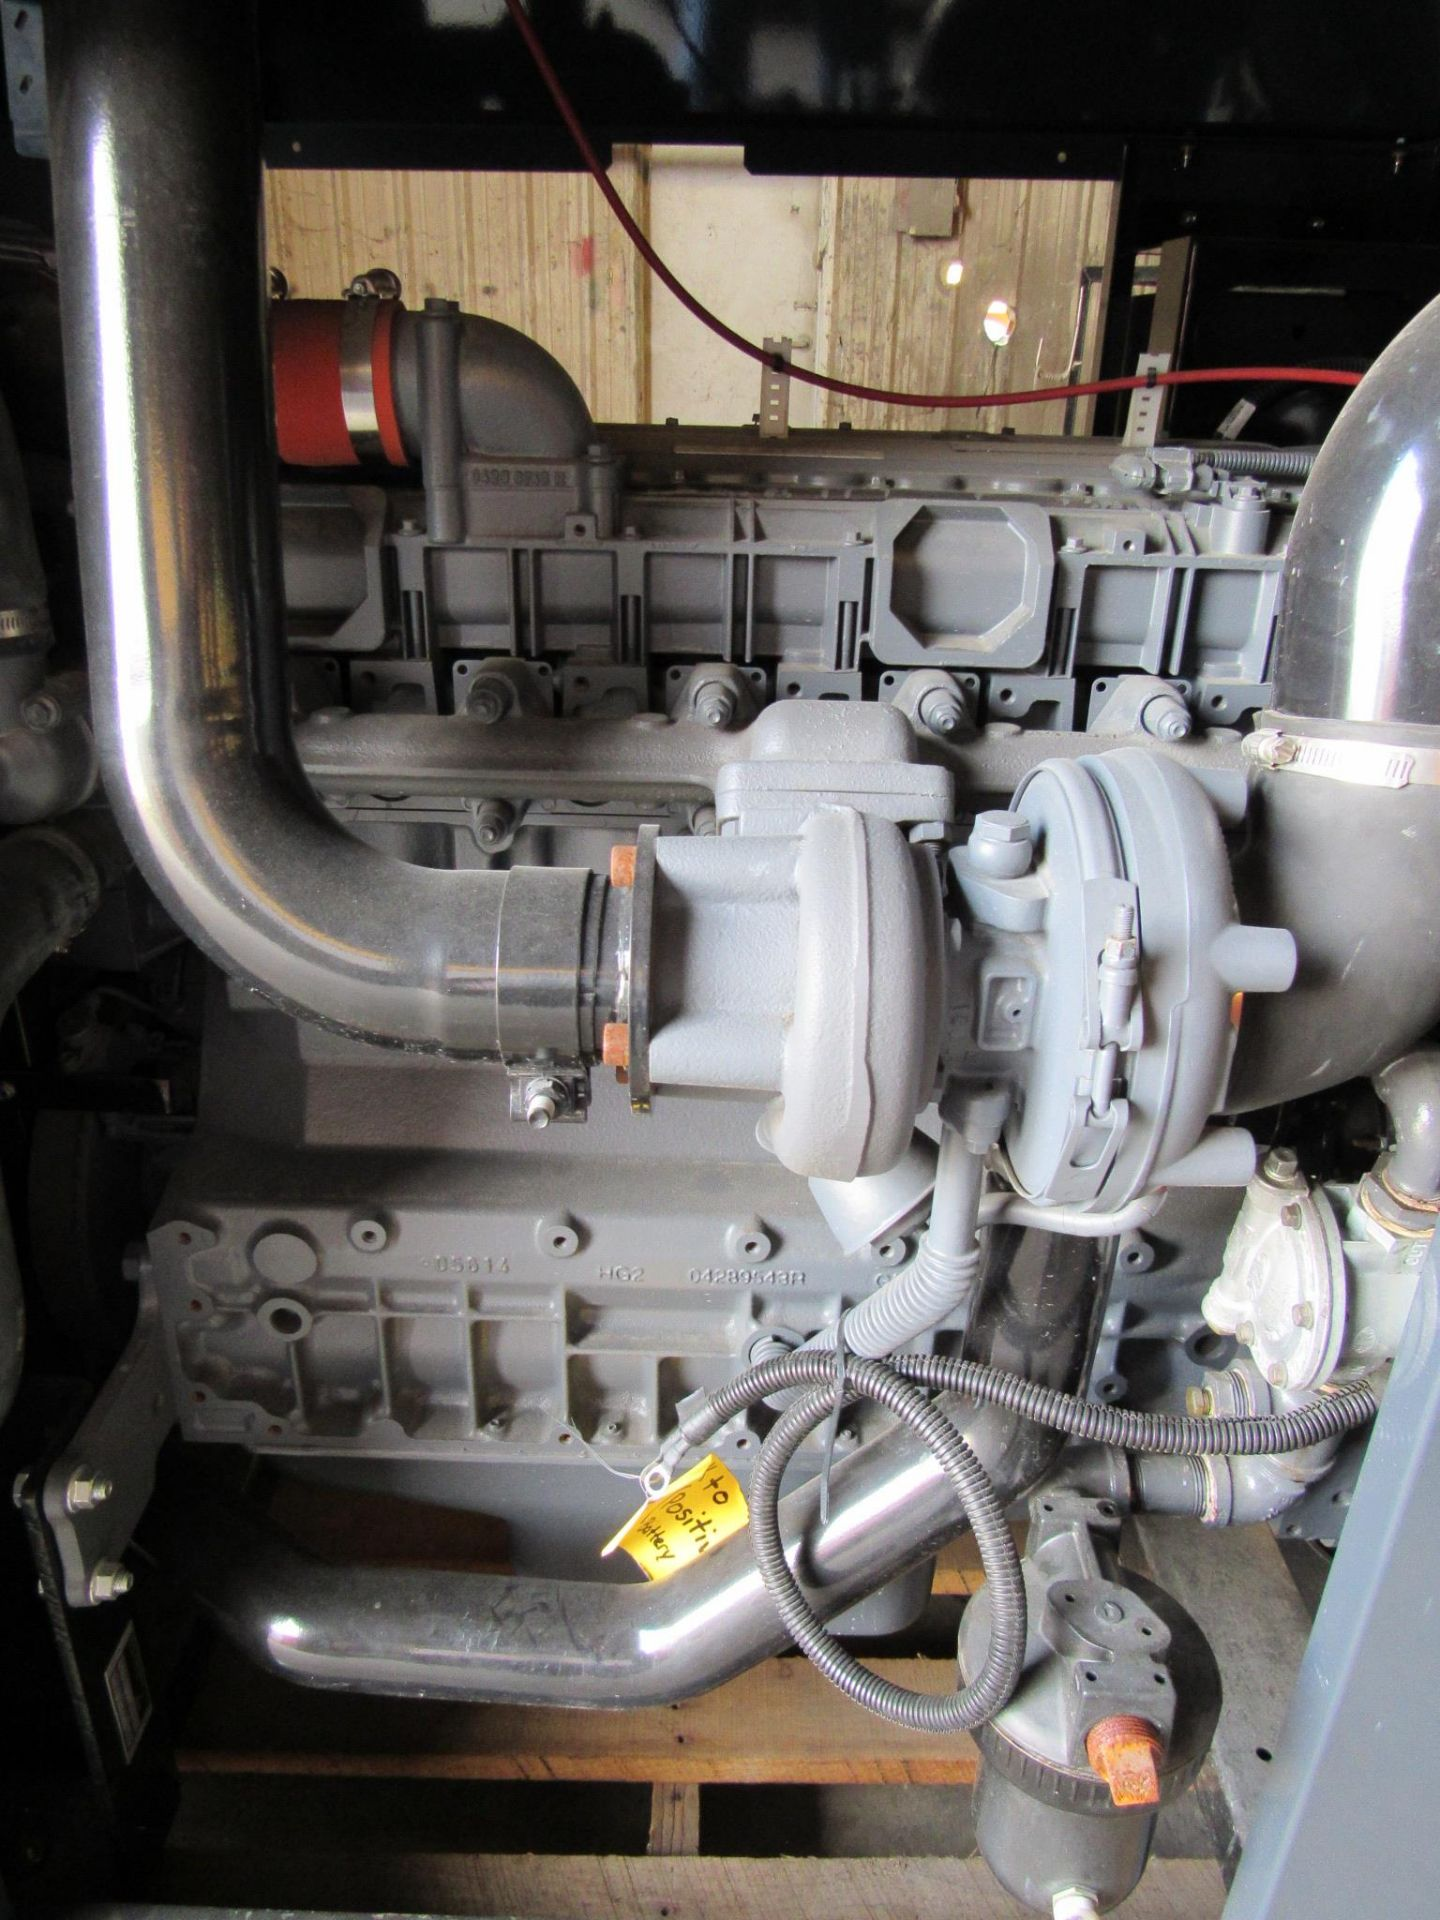 Deutz 197 HP Diesel Engine Power Unit - Image 3 of 5